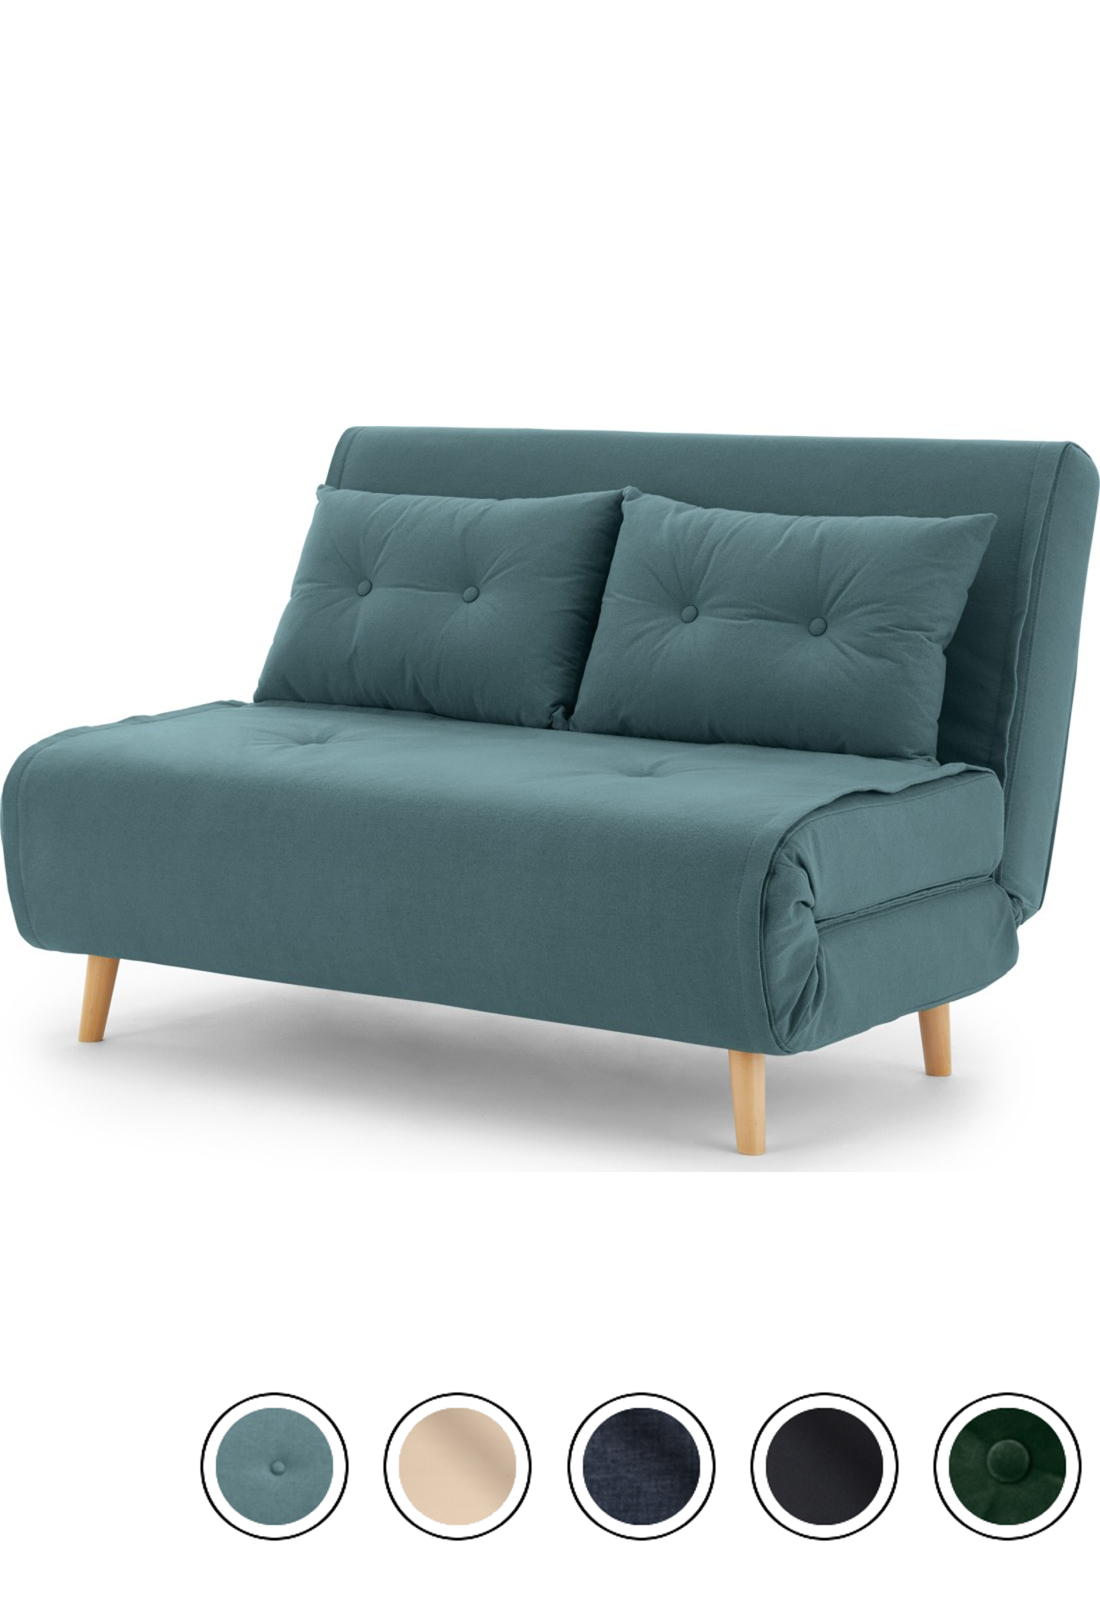 Made Sherbet Blue Sofa Bed In 2020 Small Grey Sofa Sofa Bed For